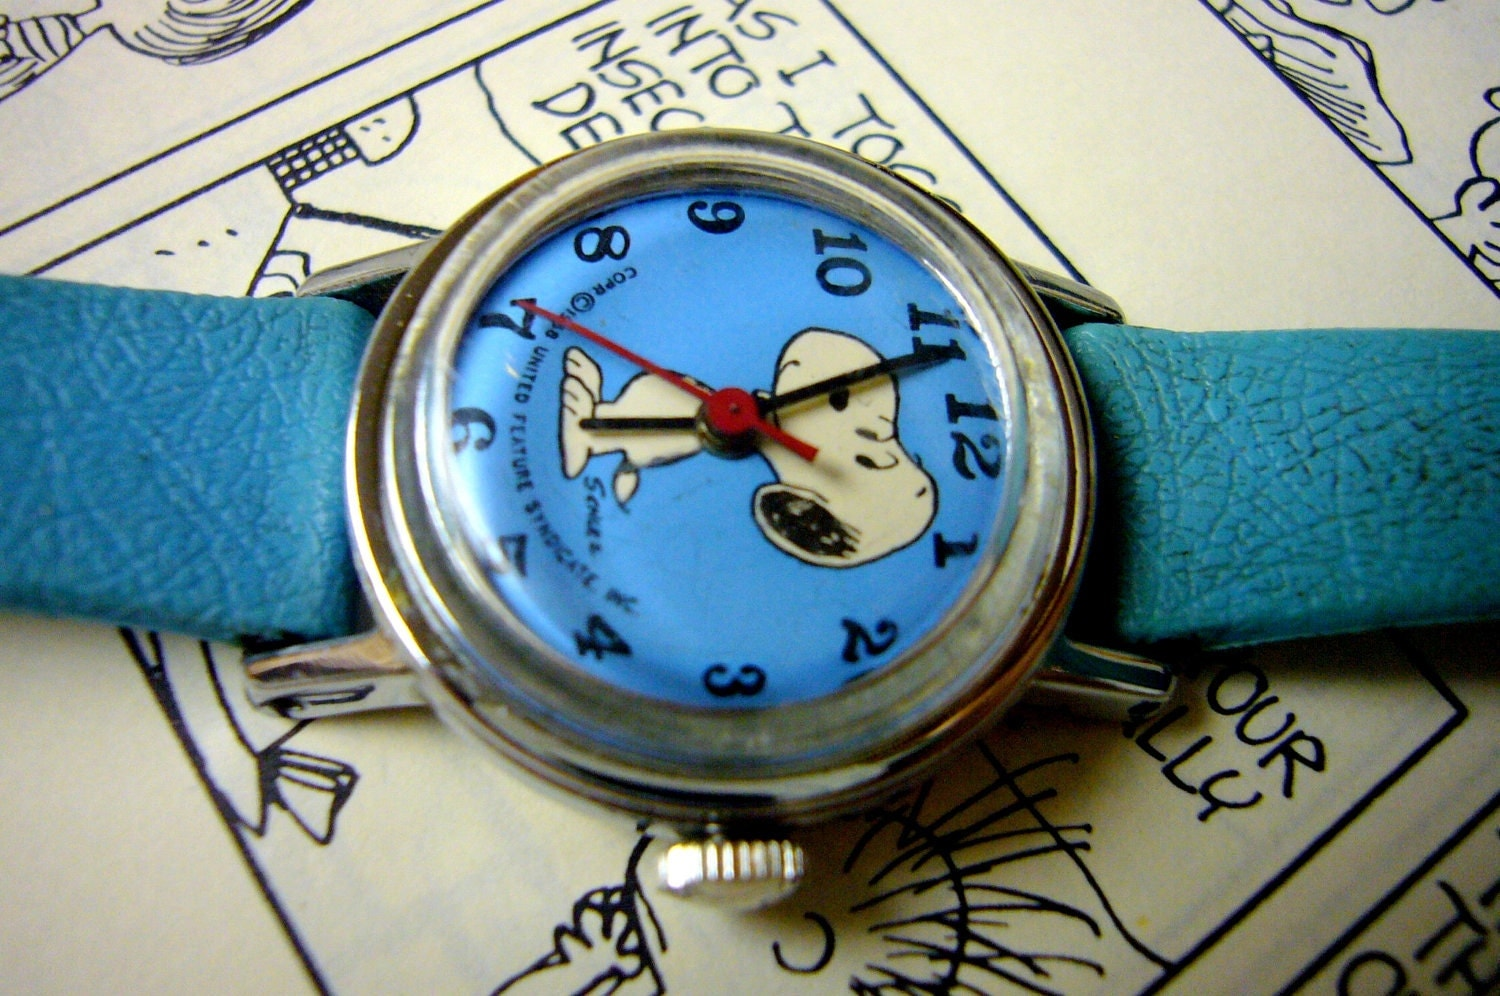 Wrist watch snoopy wristwatch vintage watch peanuts cartoon for Snoopy watches